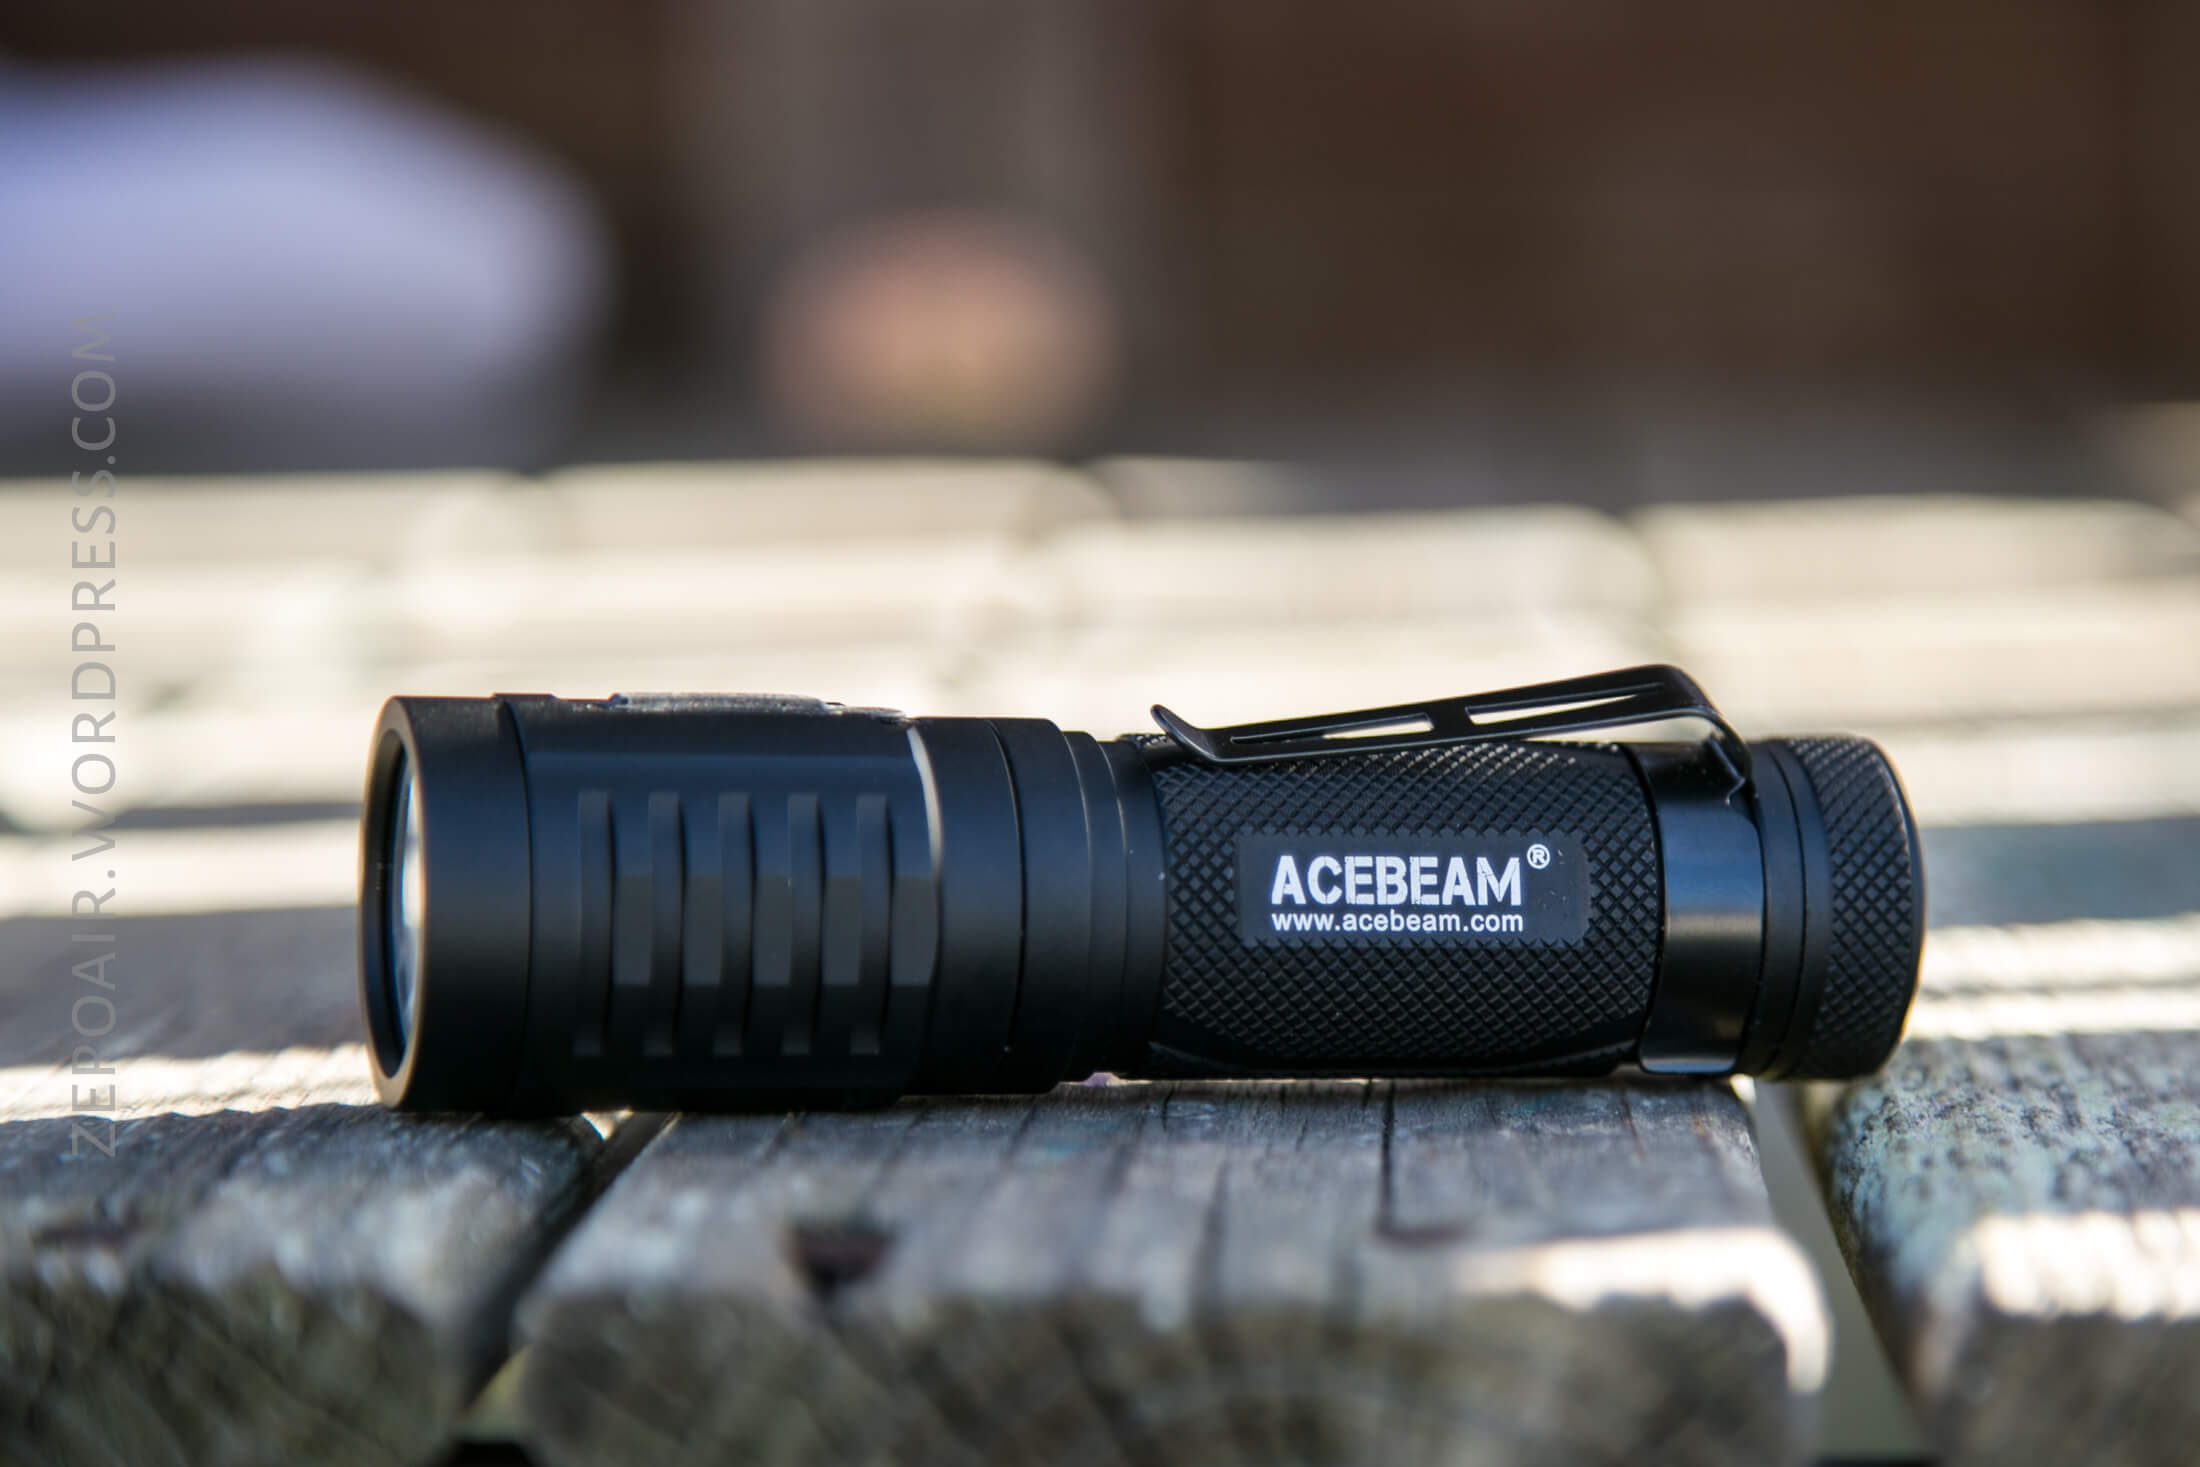 zeroair_reviews_acebeam_ec65_21700_nichia_22.jpg